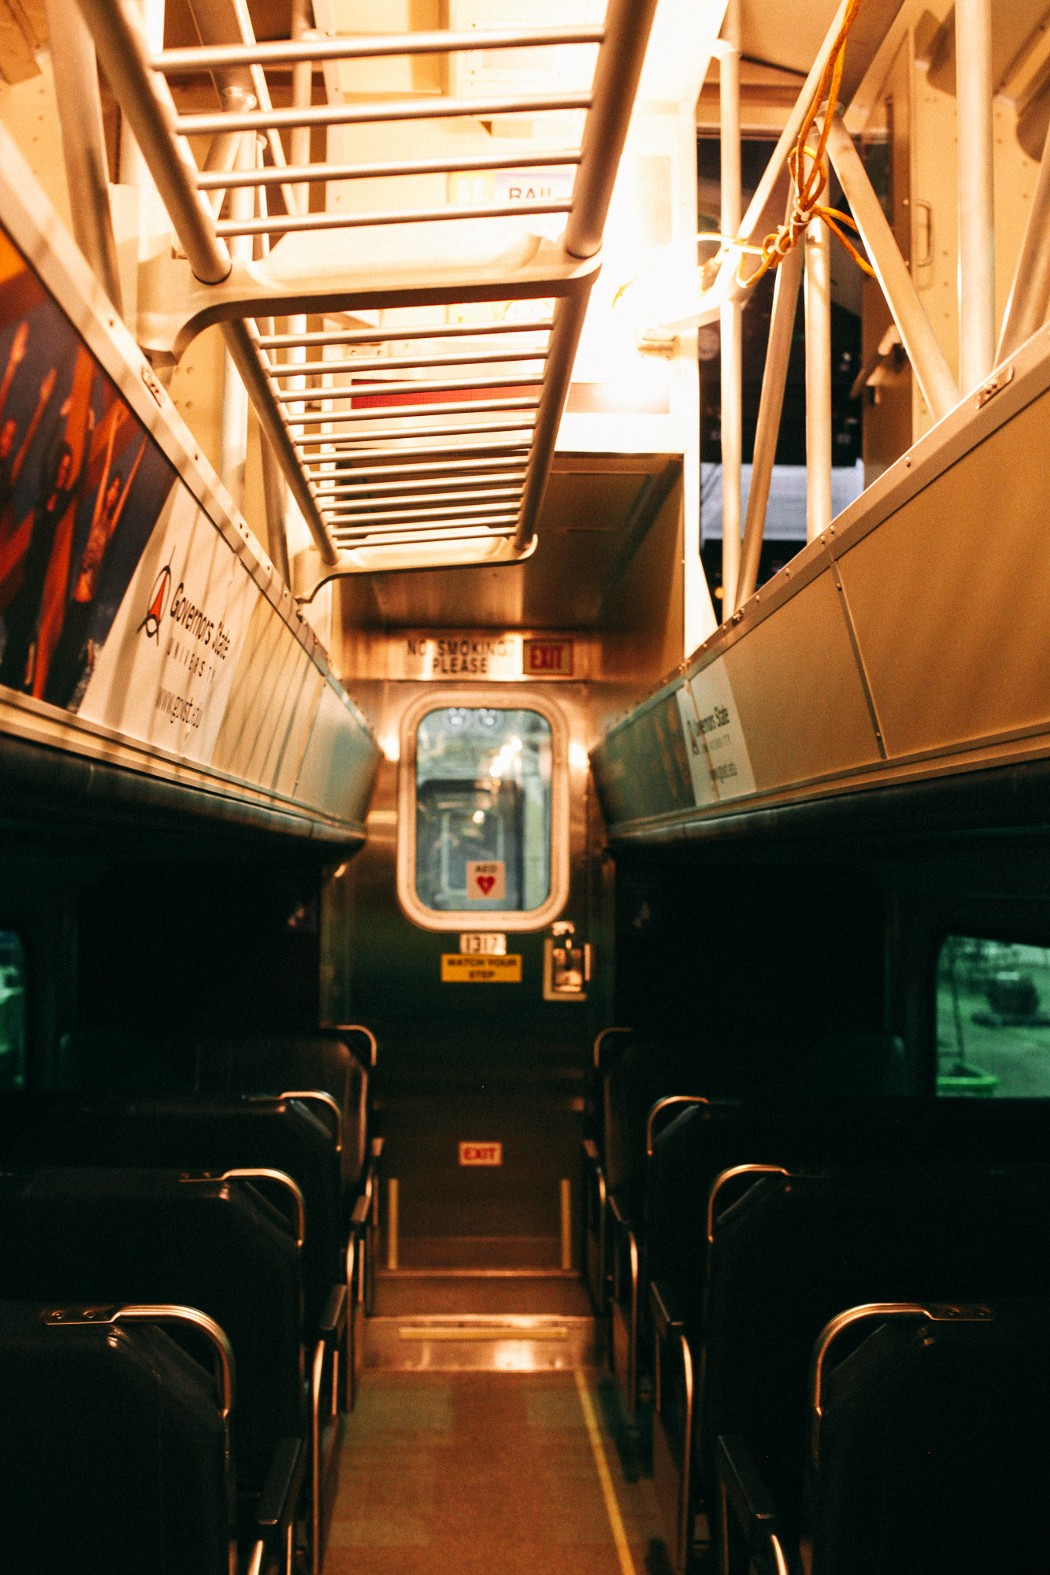 This is the interior of one of the newer cars on the Metra Electric line.